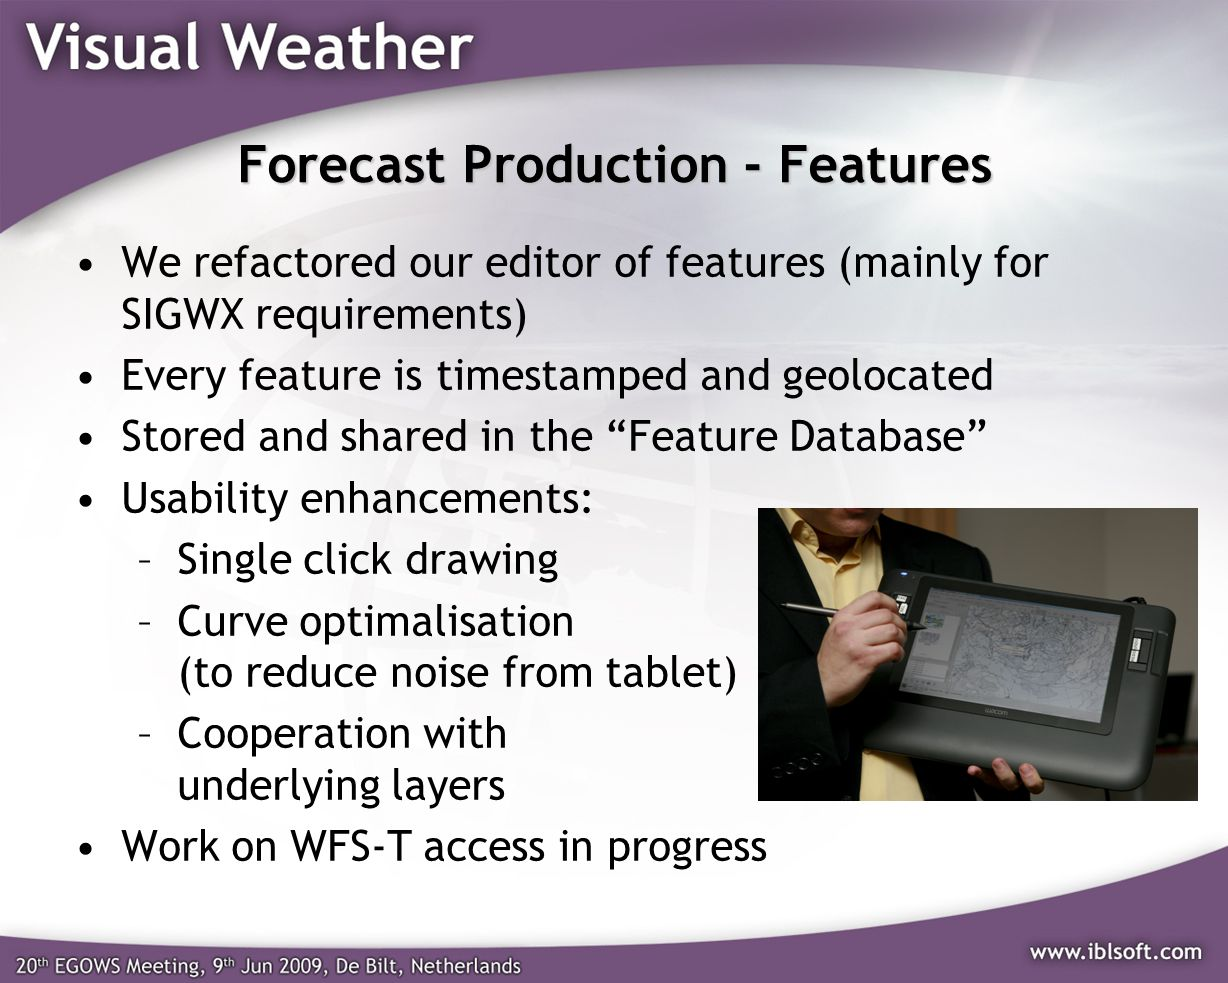 Forecast Production - Features